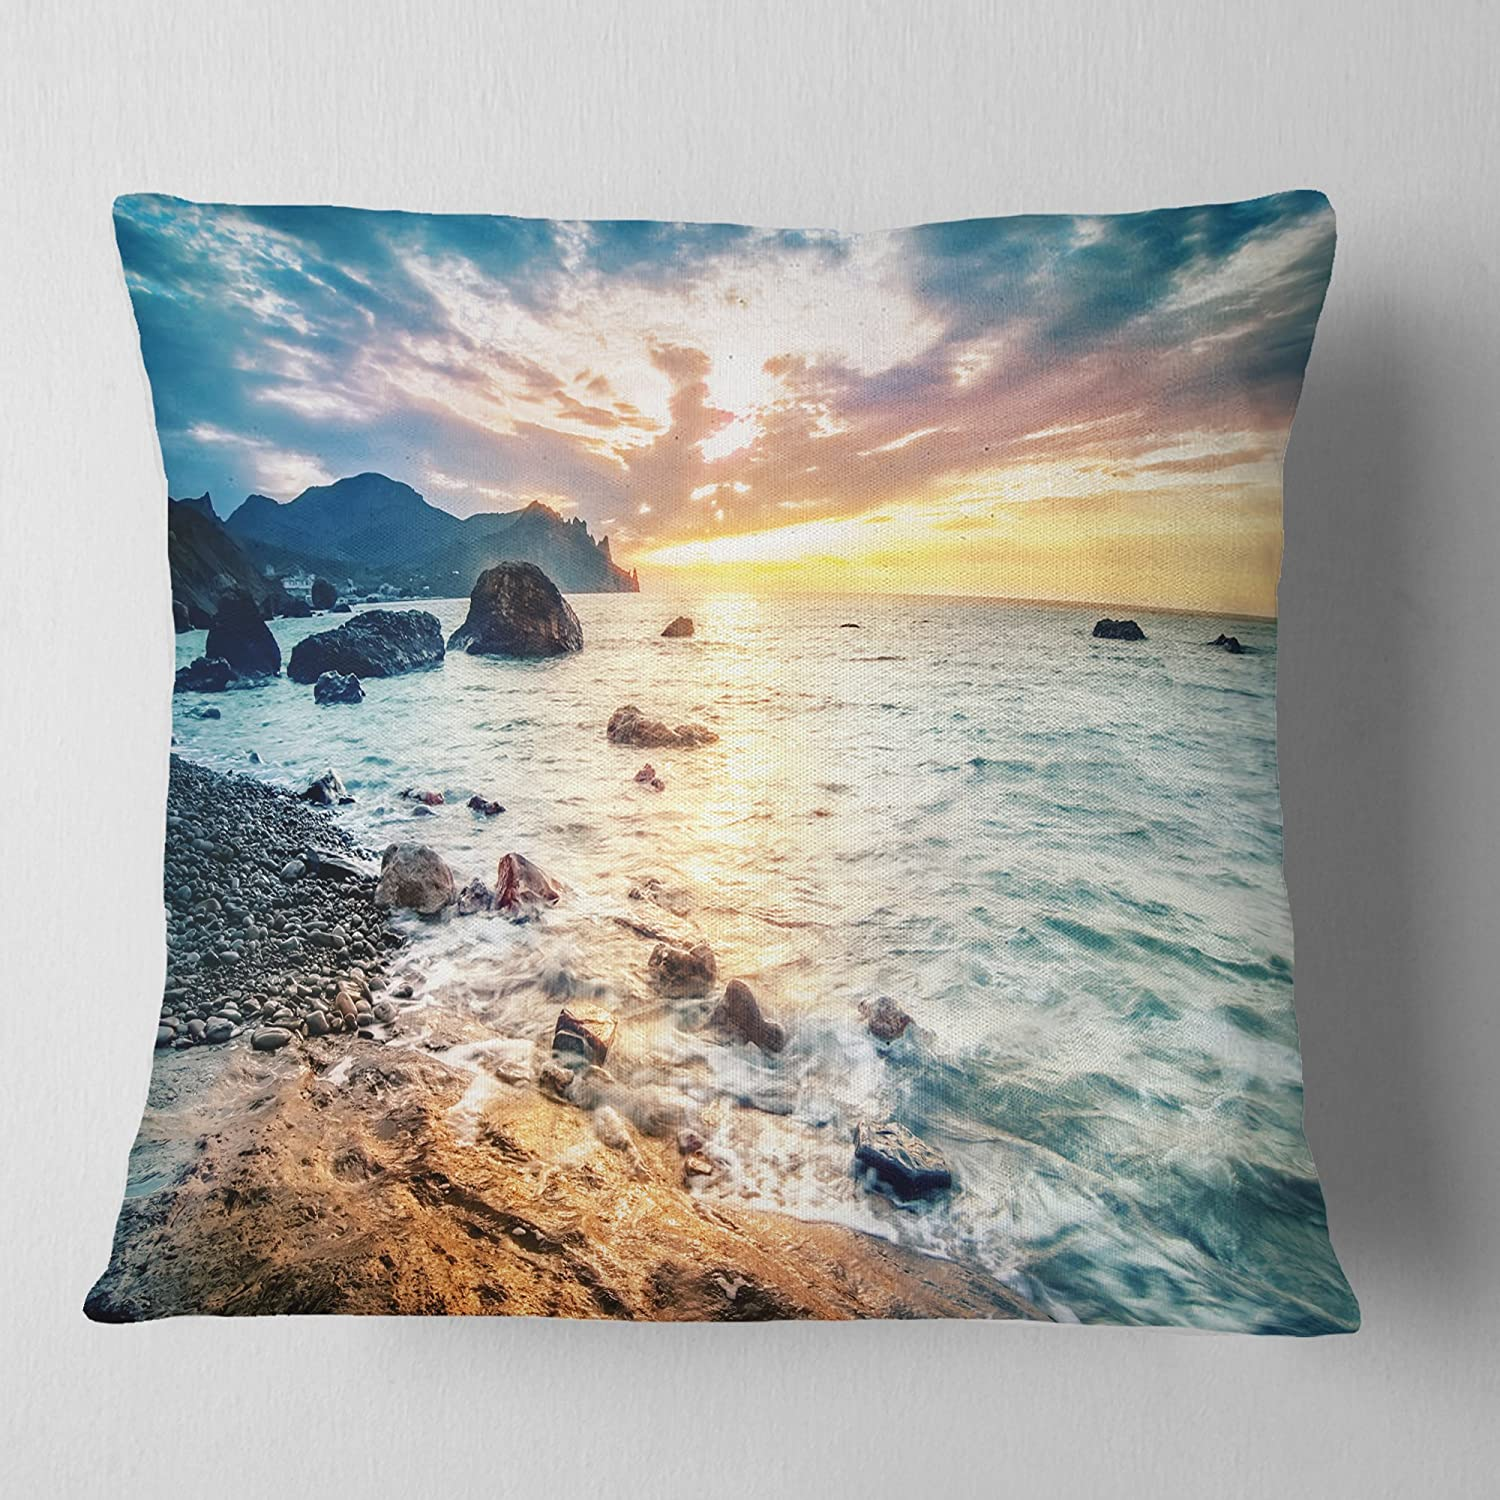 Designart CU10673-18-18 Summer Sea with Mountains and Waves' Seashore Cushion Cover for Living Room, Sofa Throw Pillow 18 in. x 18 in. in